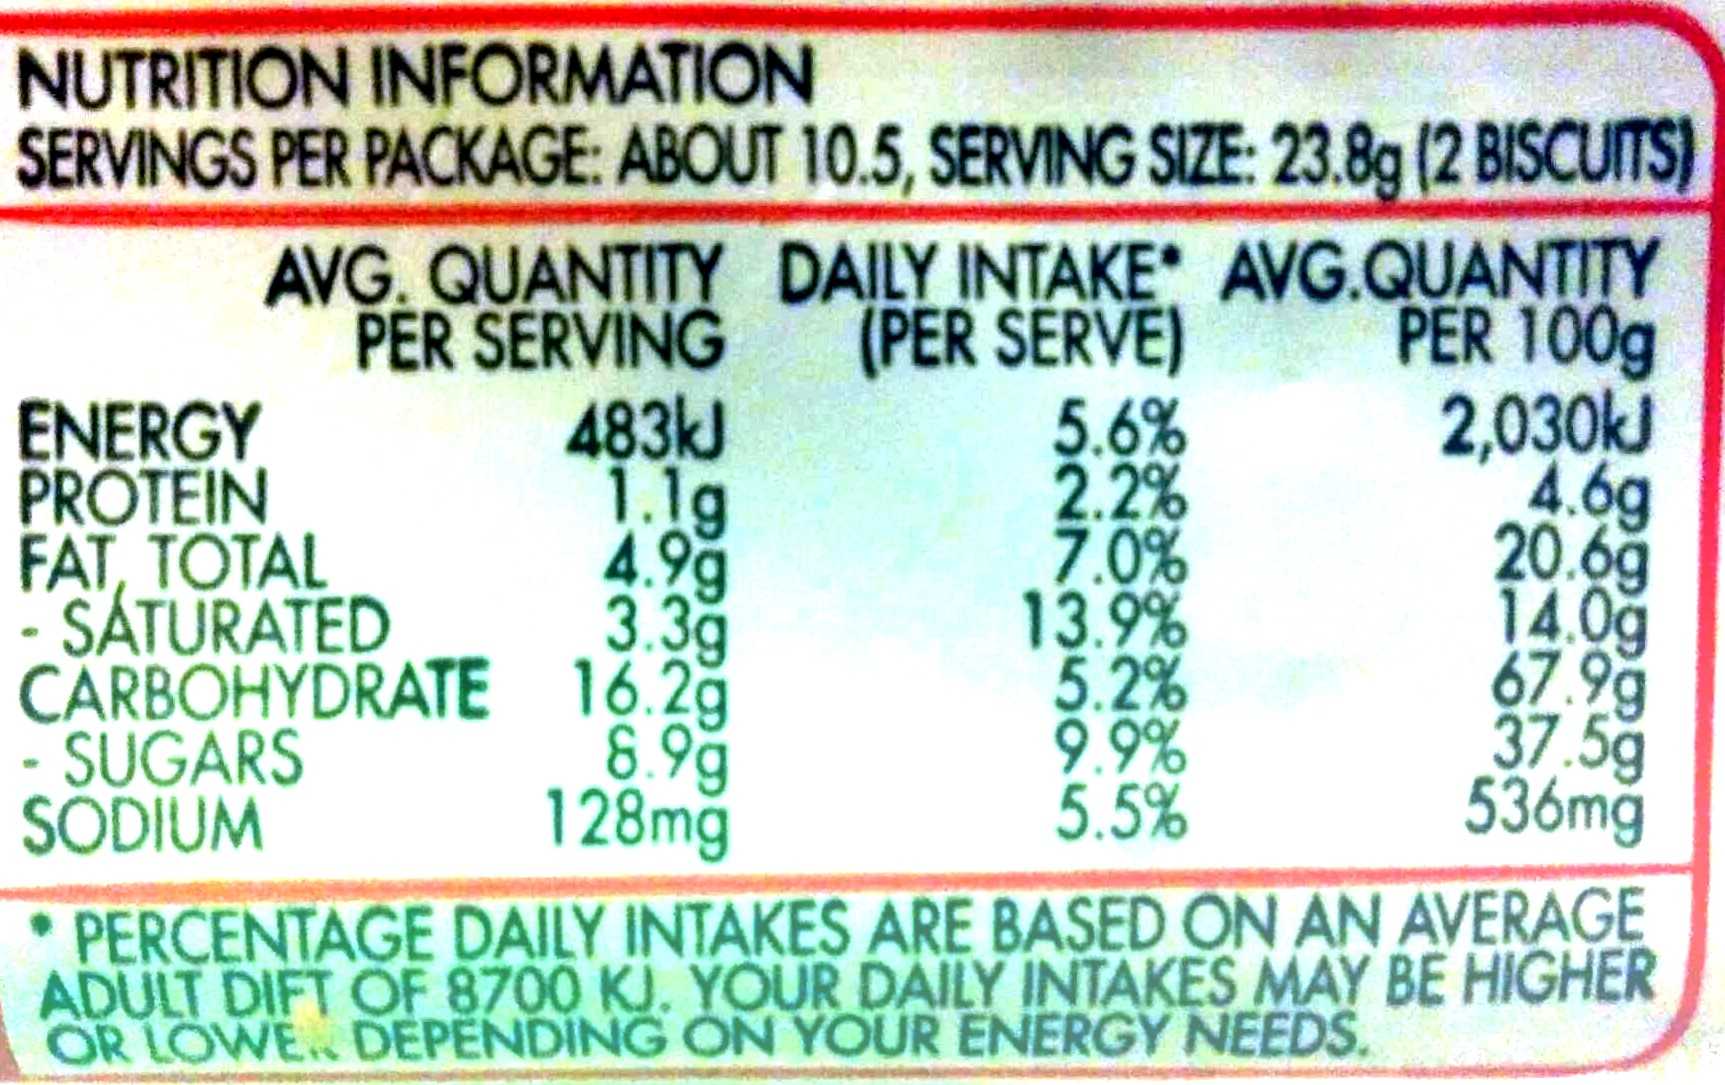 Butternut snap cookie - Nutrition facts